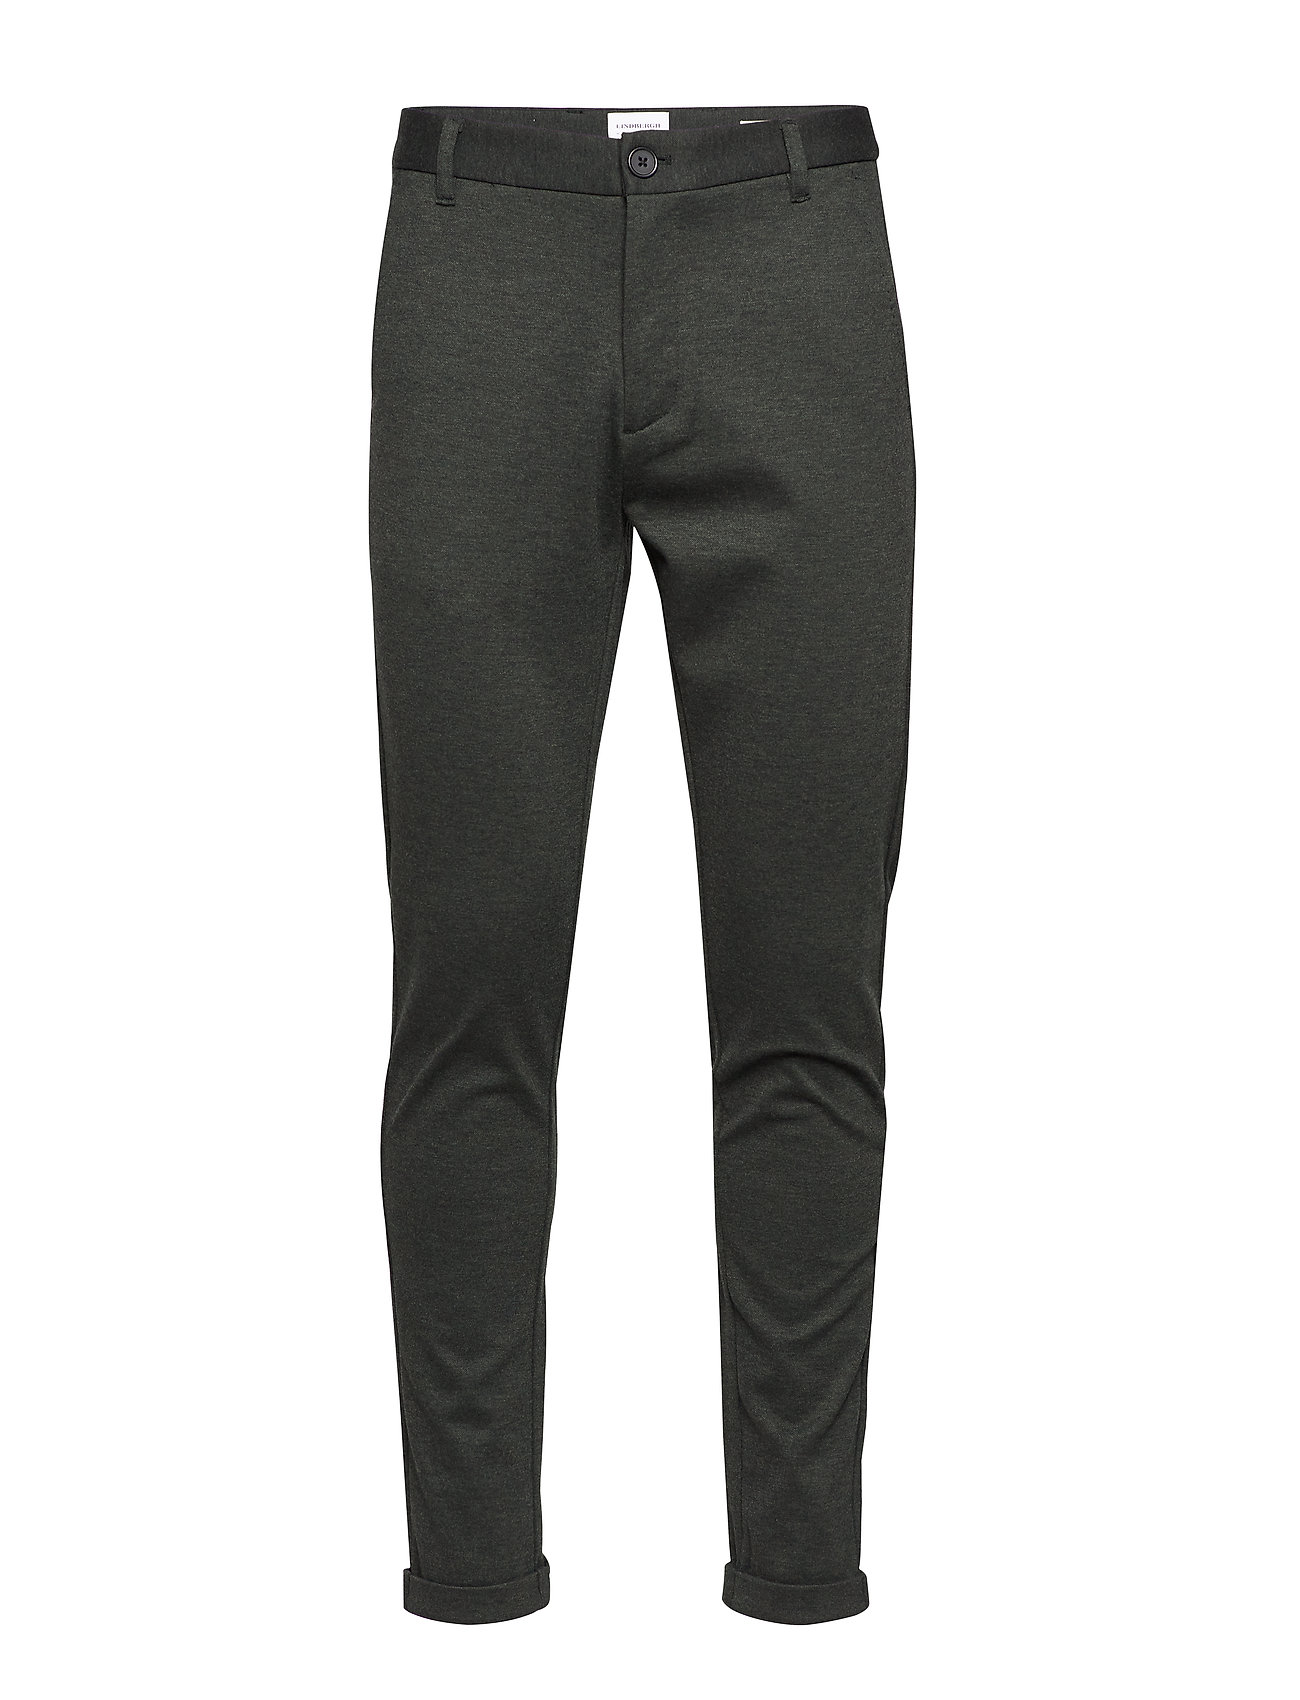 Lindbergh Knitted pants normal length - ARMY MIX